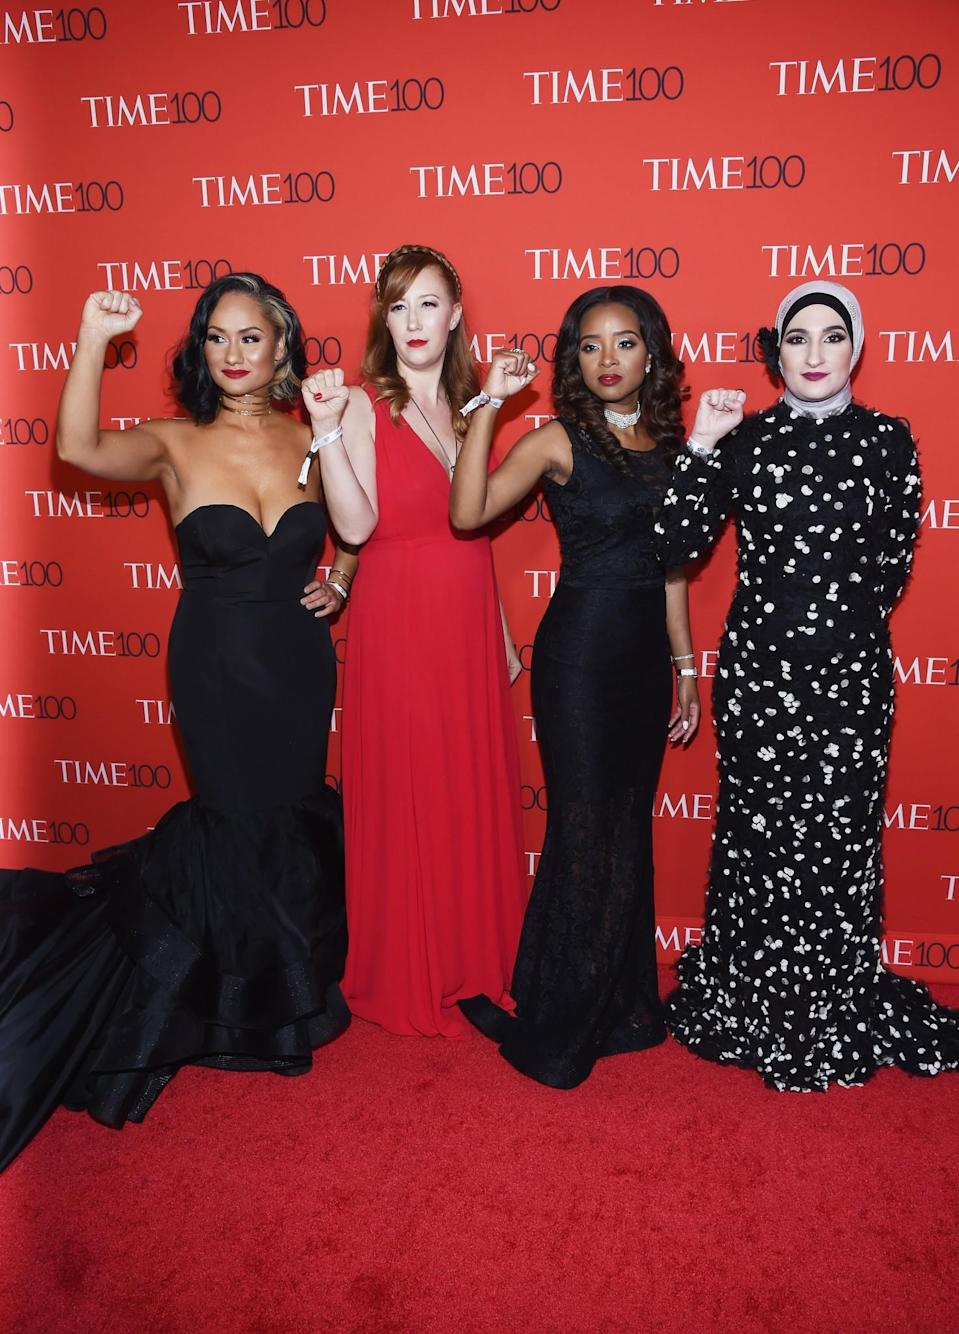 <p>The Women's March National co-chairs were as strong as ever on the red carpet. (Photo: Reuters) </p>